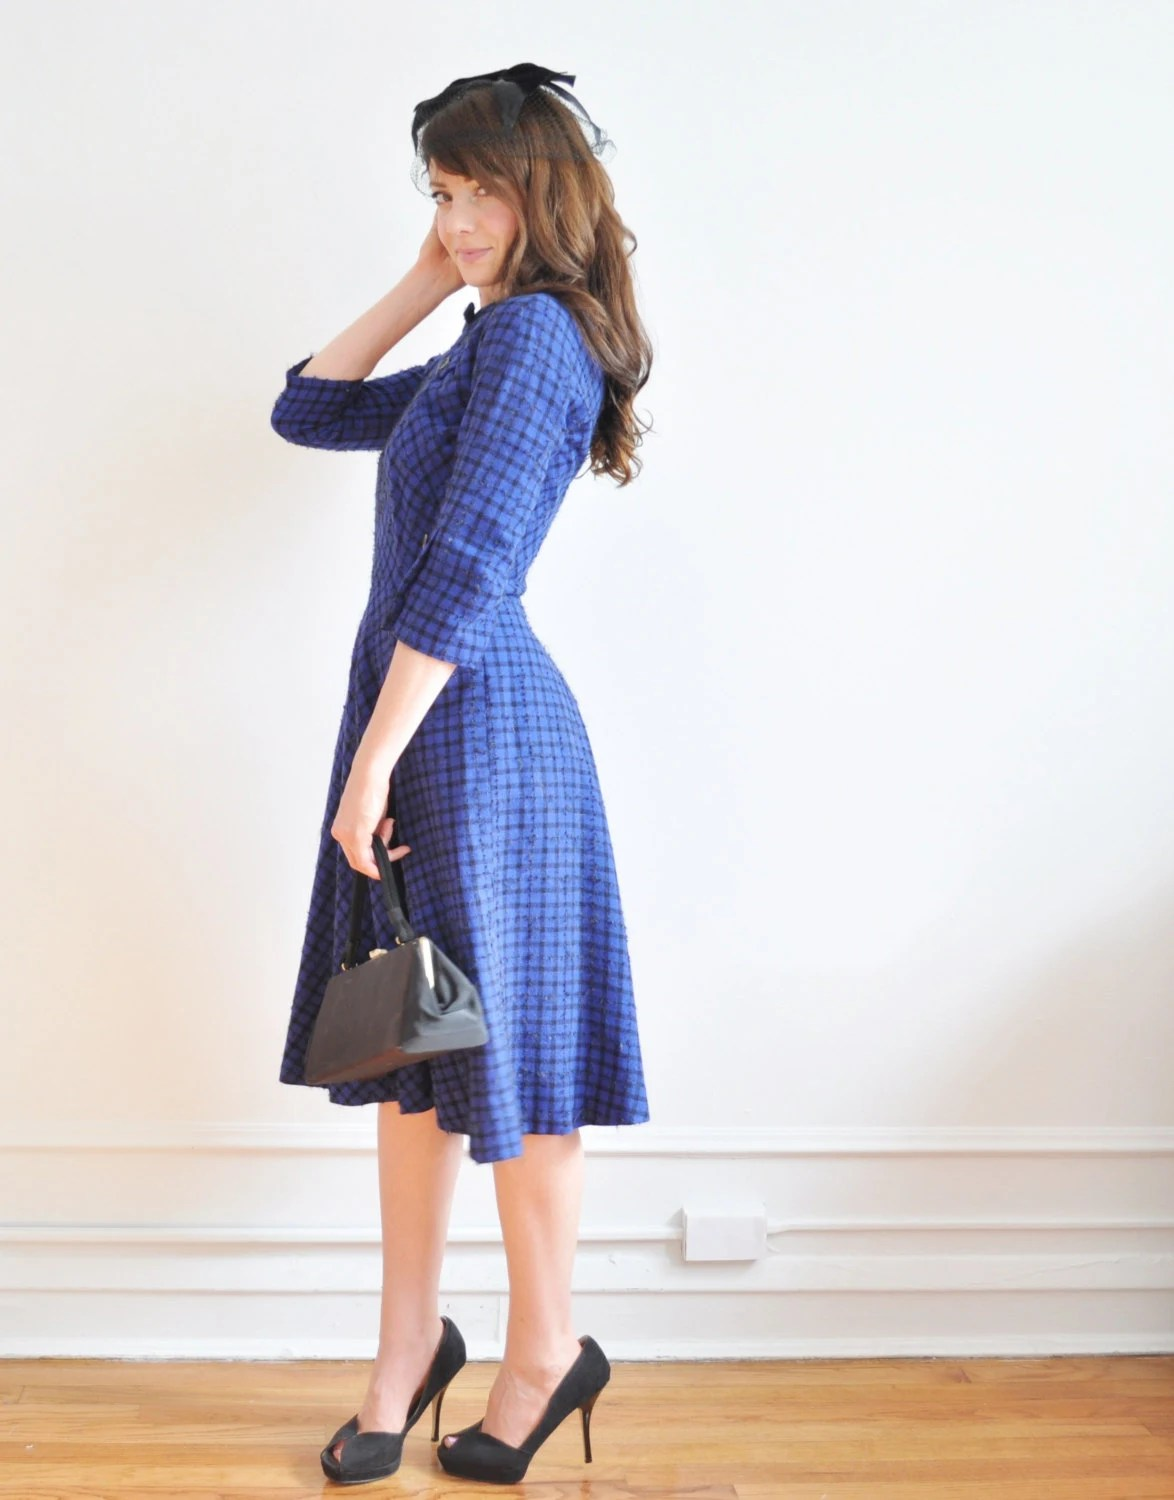 sapphire blue 1950 dress and cardigan . mid century two piece wool set .small - DOTTO